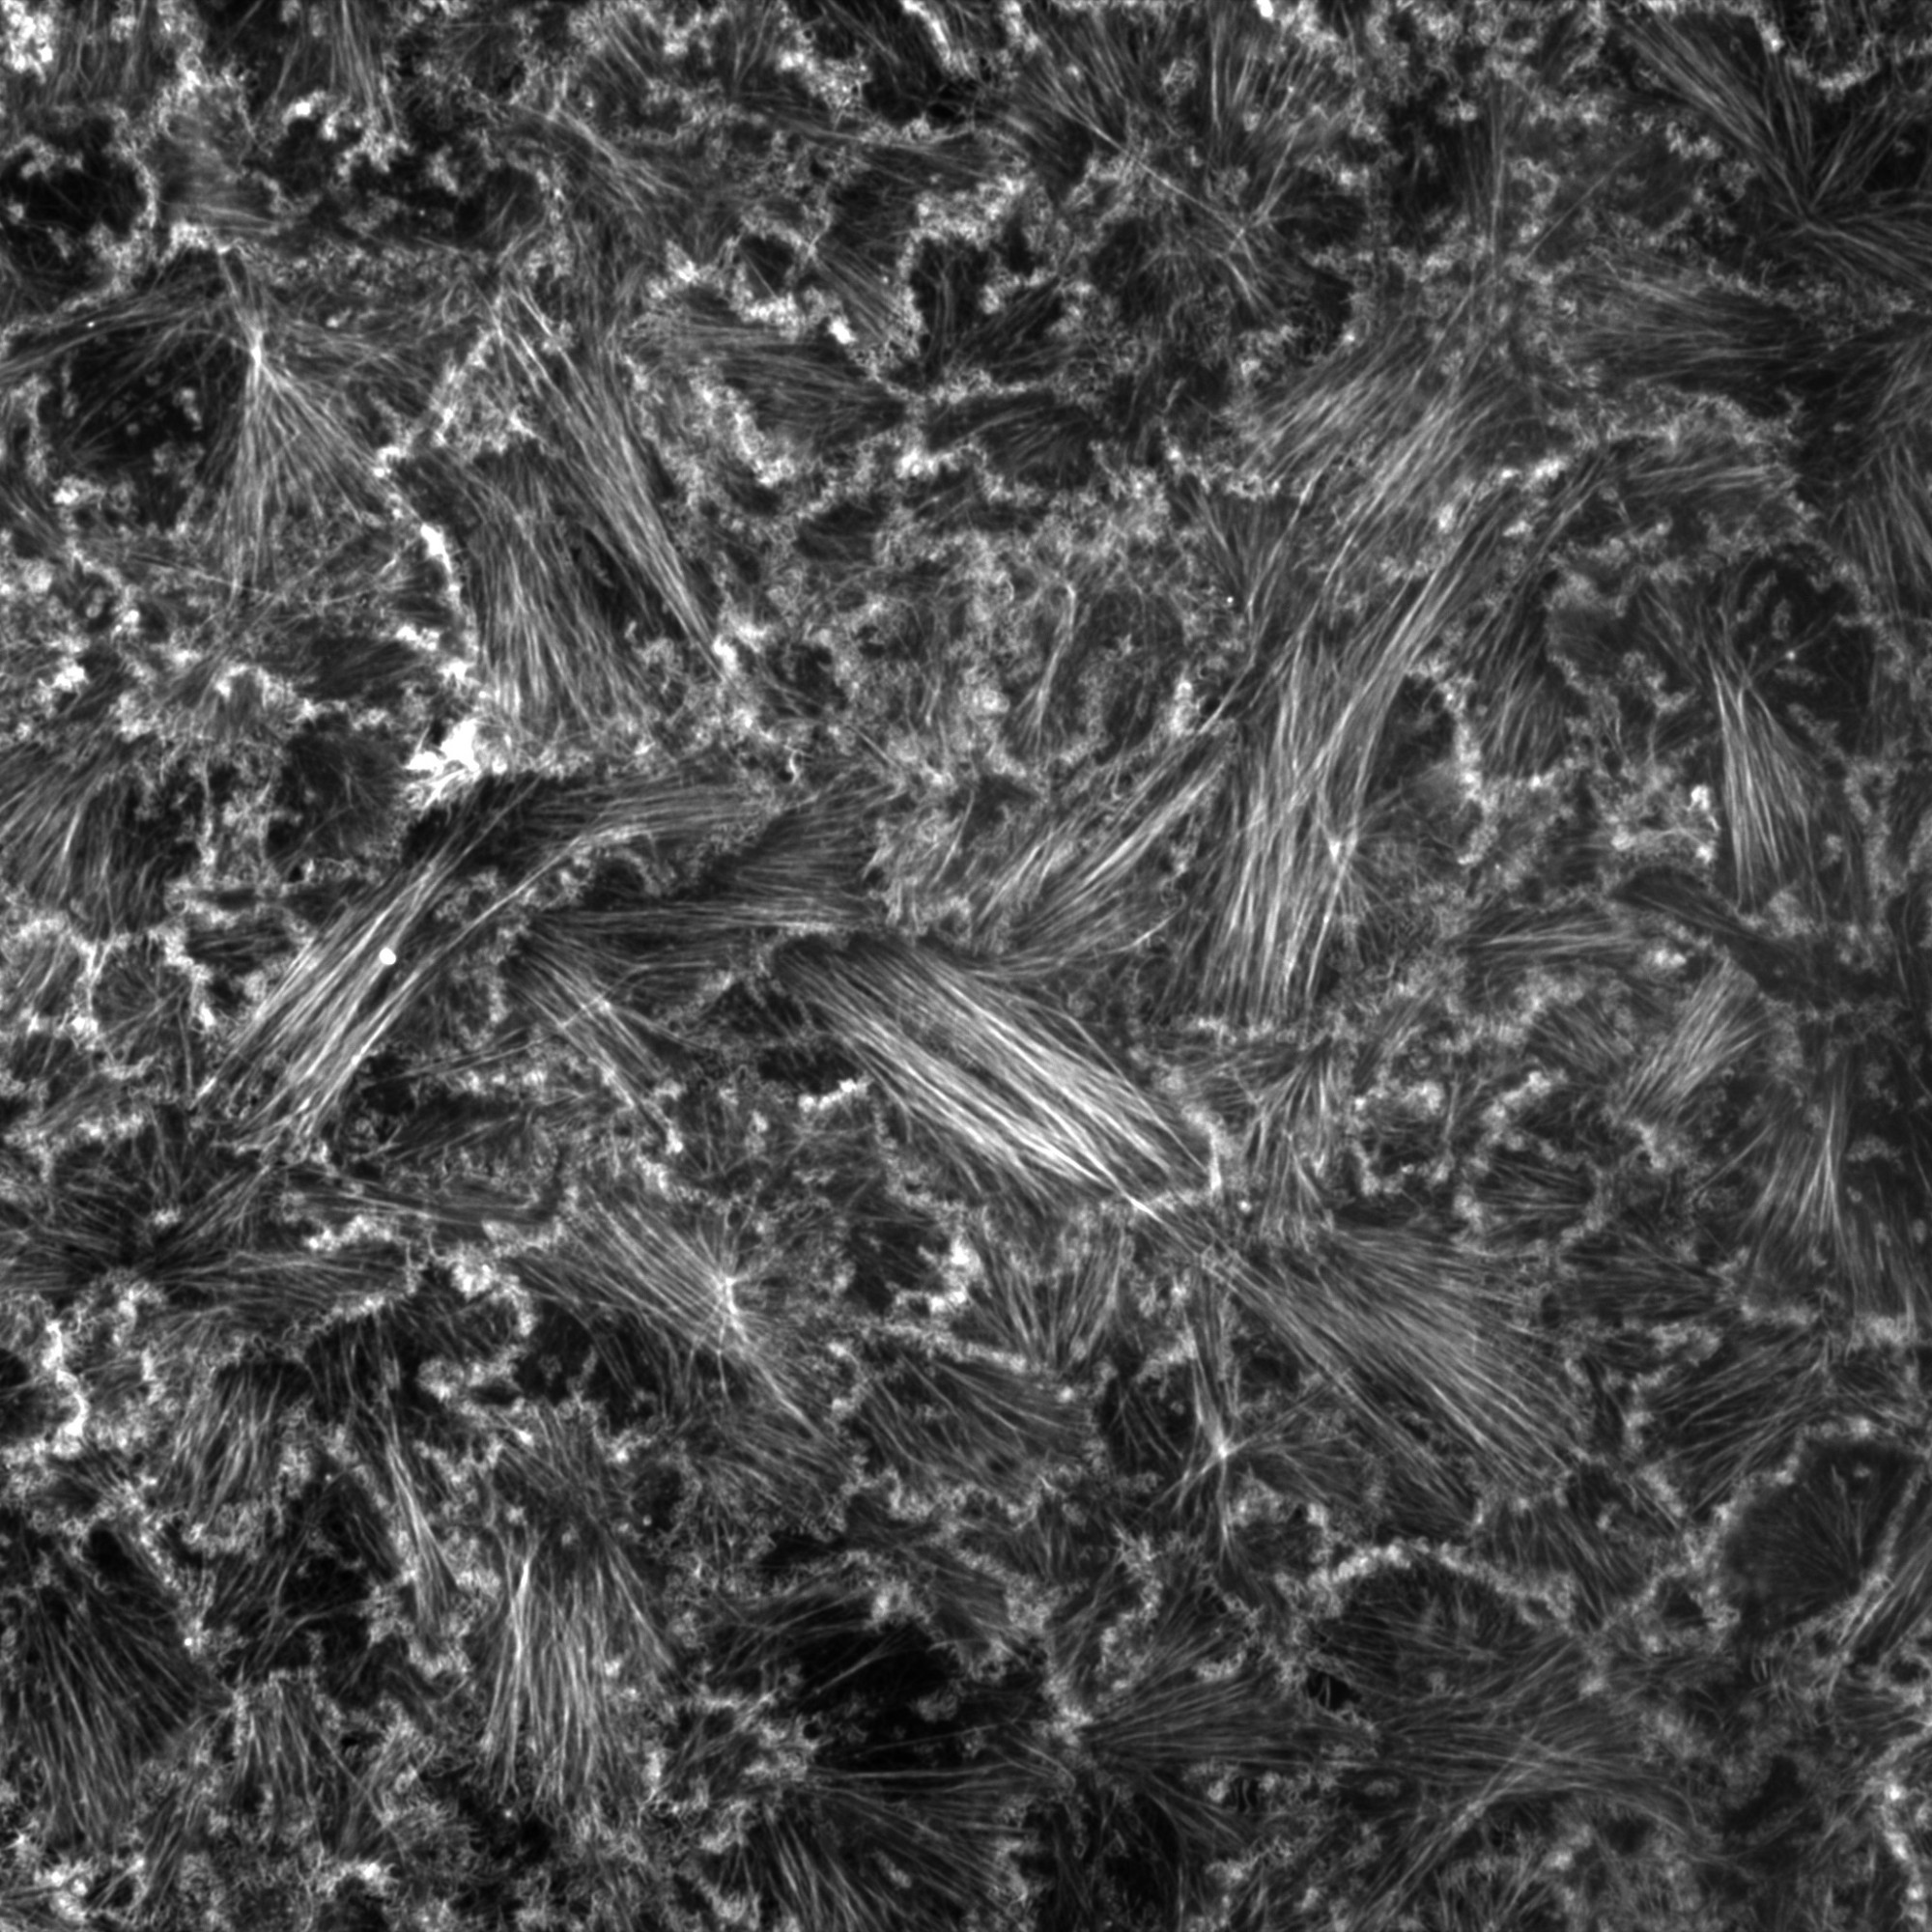 Breast cancer cell monolayer stained for actin.